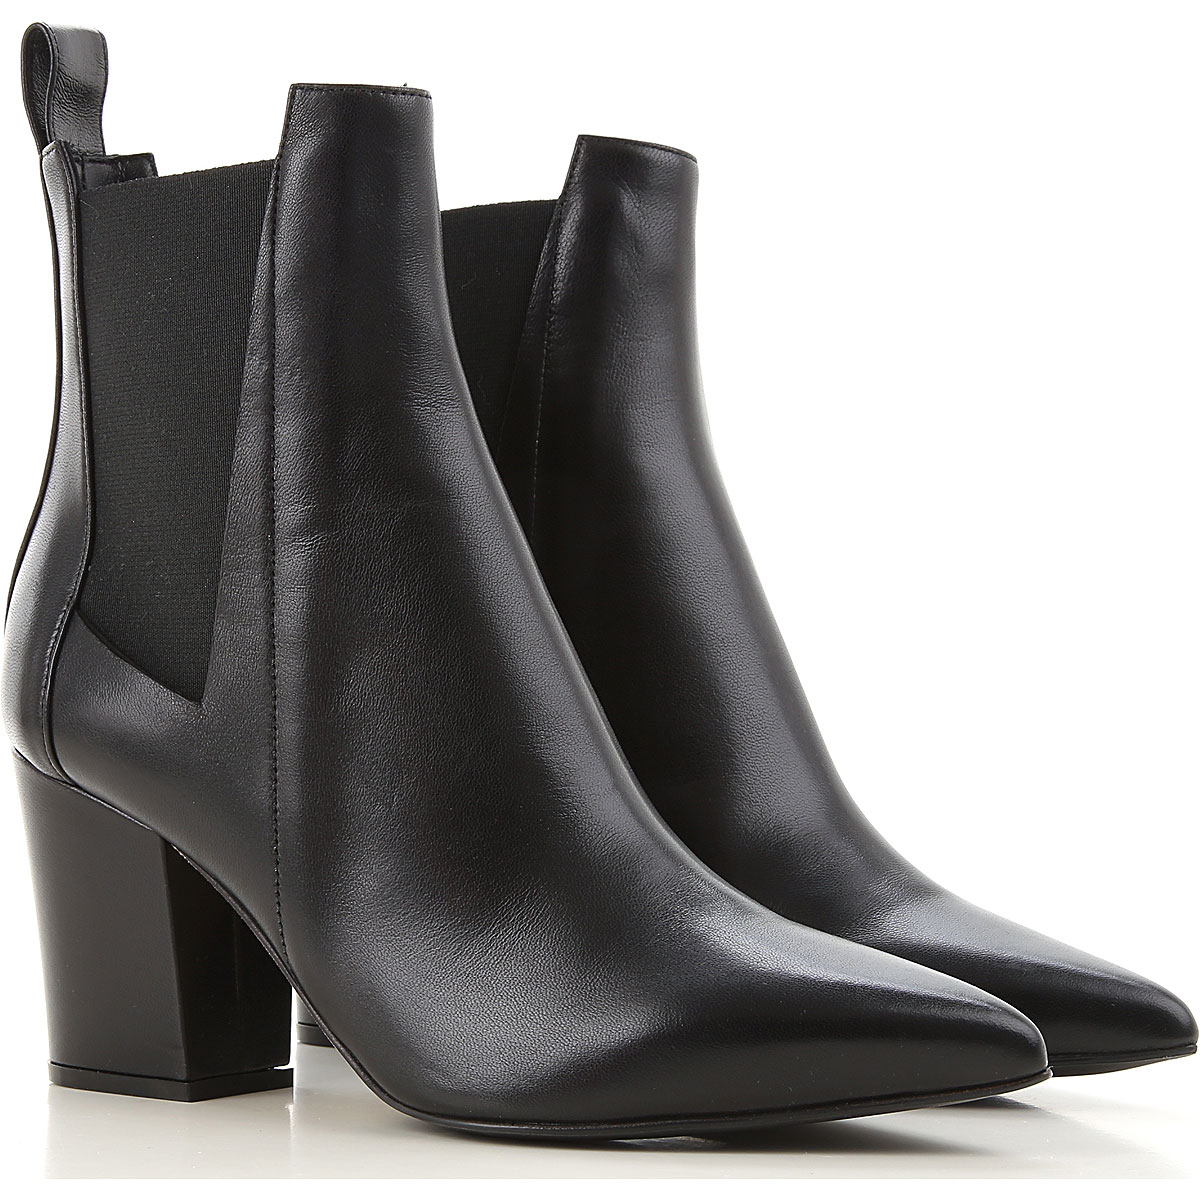 Sergio Rossi Boots for Women, Booties On Sale, Black, Leather, 2019, 10 5.5 6 8.5